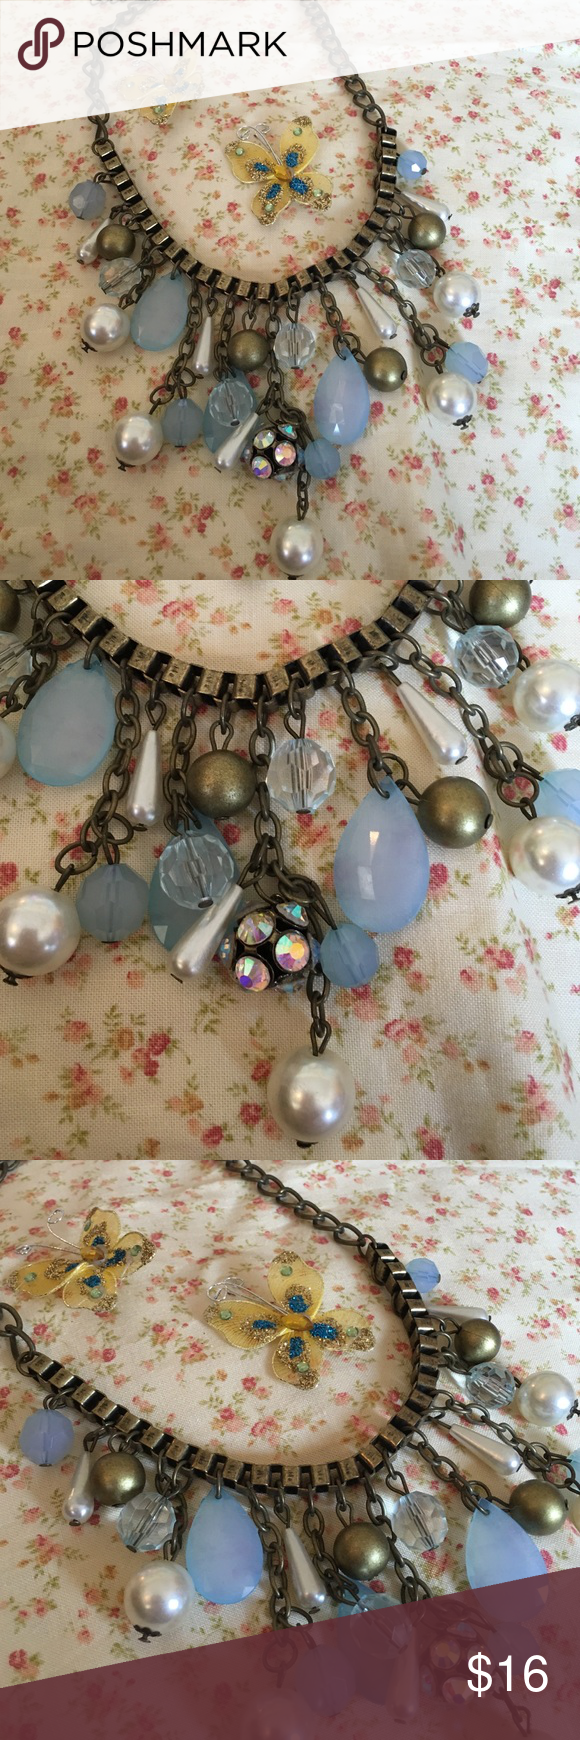 Touch of Blue Necklace Very cool statement piece. Blue crystals, pearls, teardrops and balls of gold. You know you want this! Jewelry Necklaces